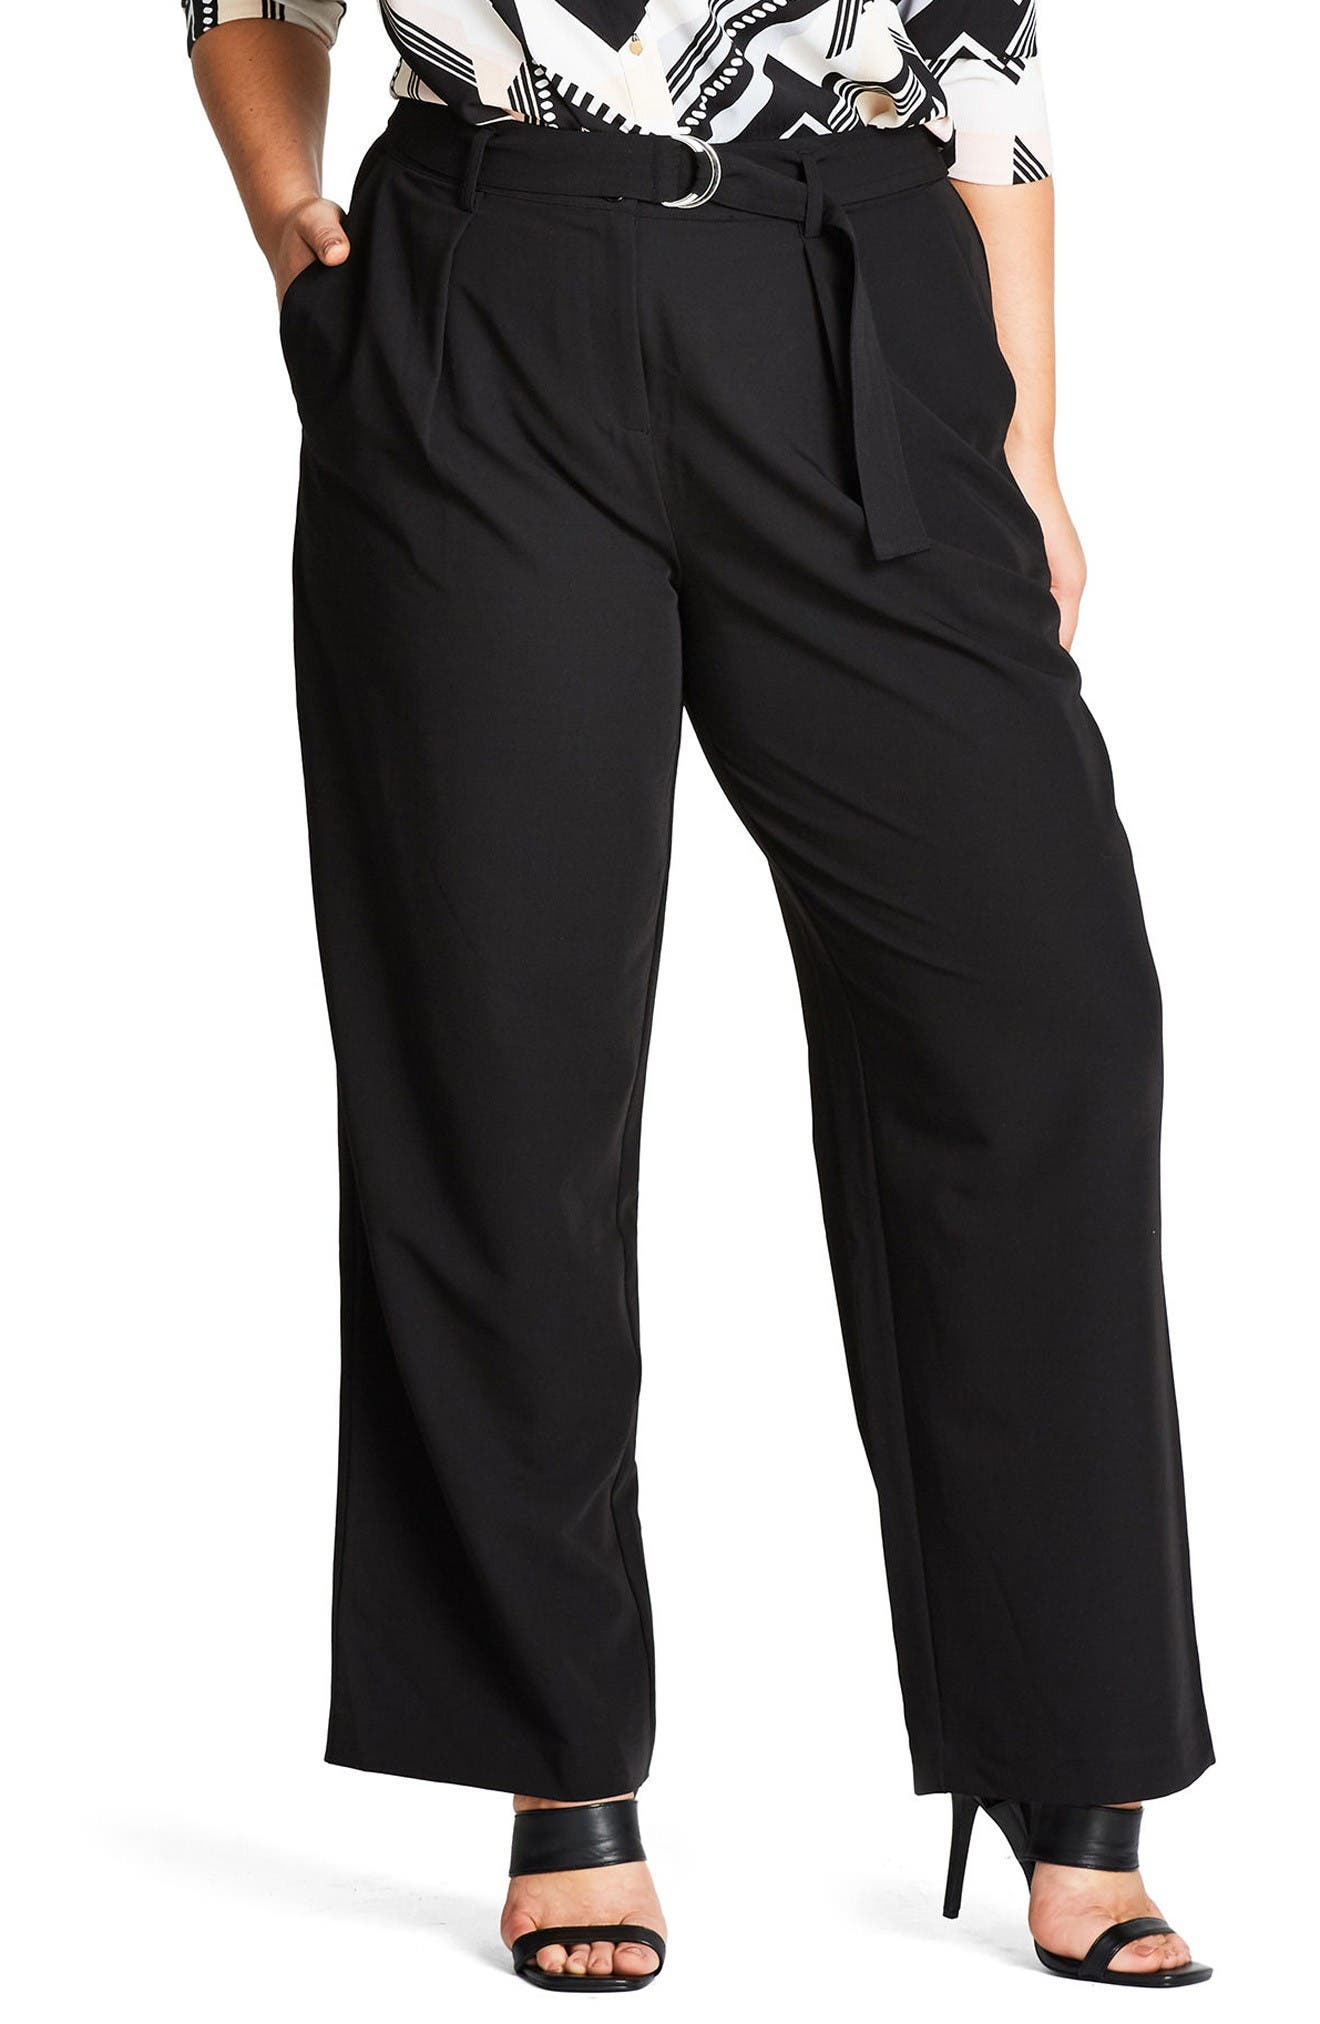 Alternate Image 1 Selected - City Chic Karate Tie Pants (Plus Size)